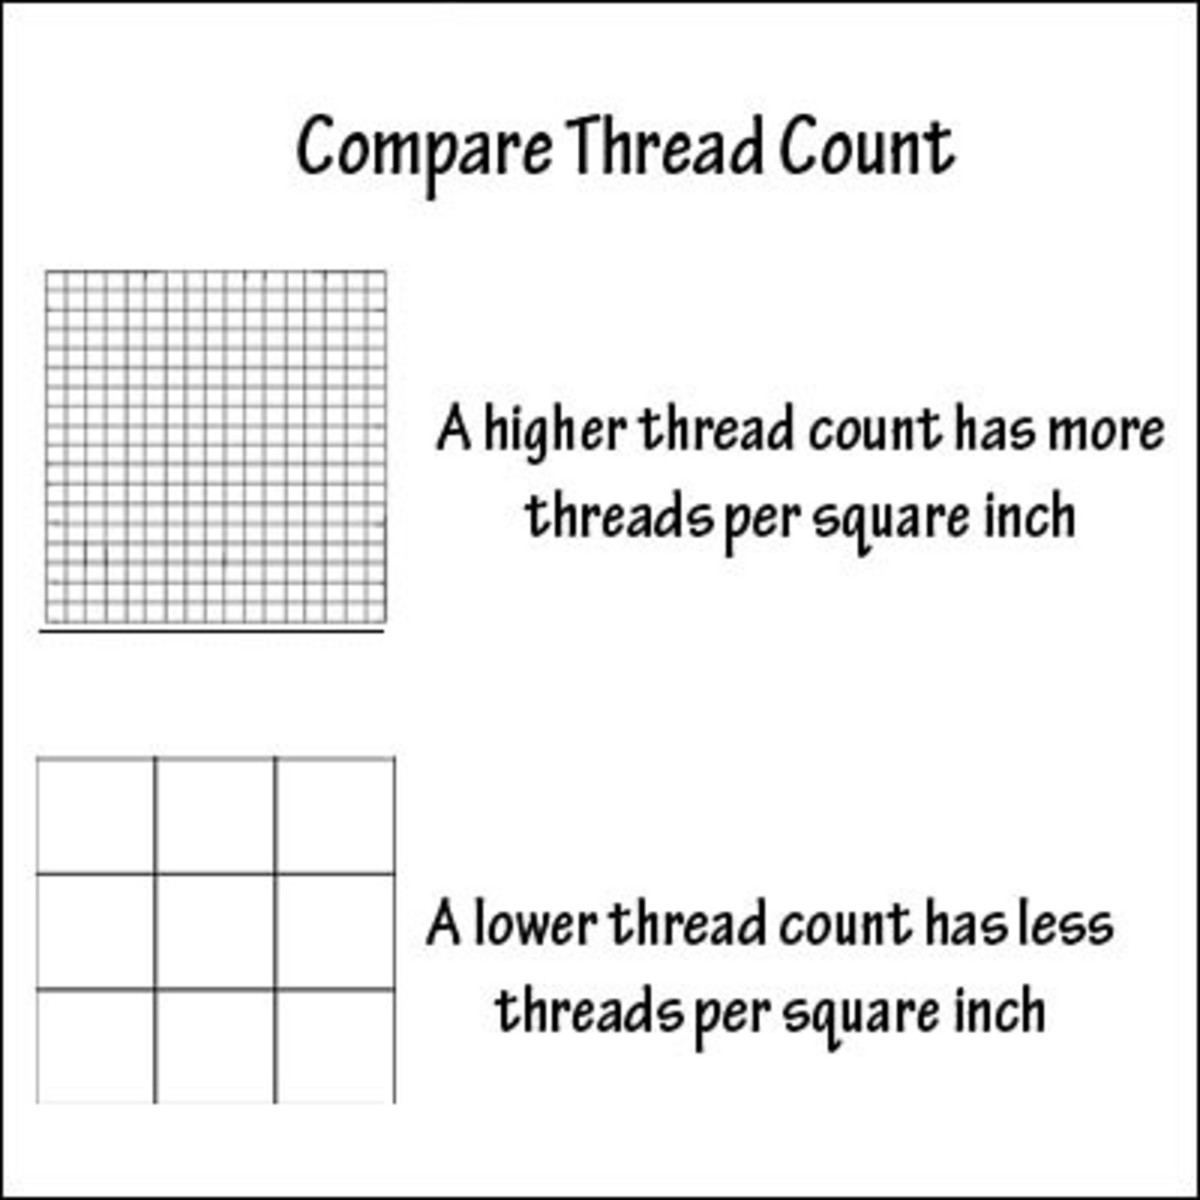 Before you look at the thread count check the yarn quality. The sheets will have a softer feel and smoother appearance.